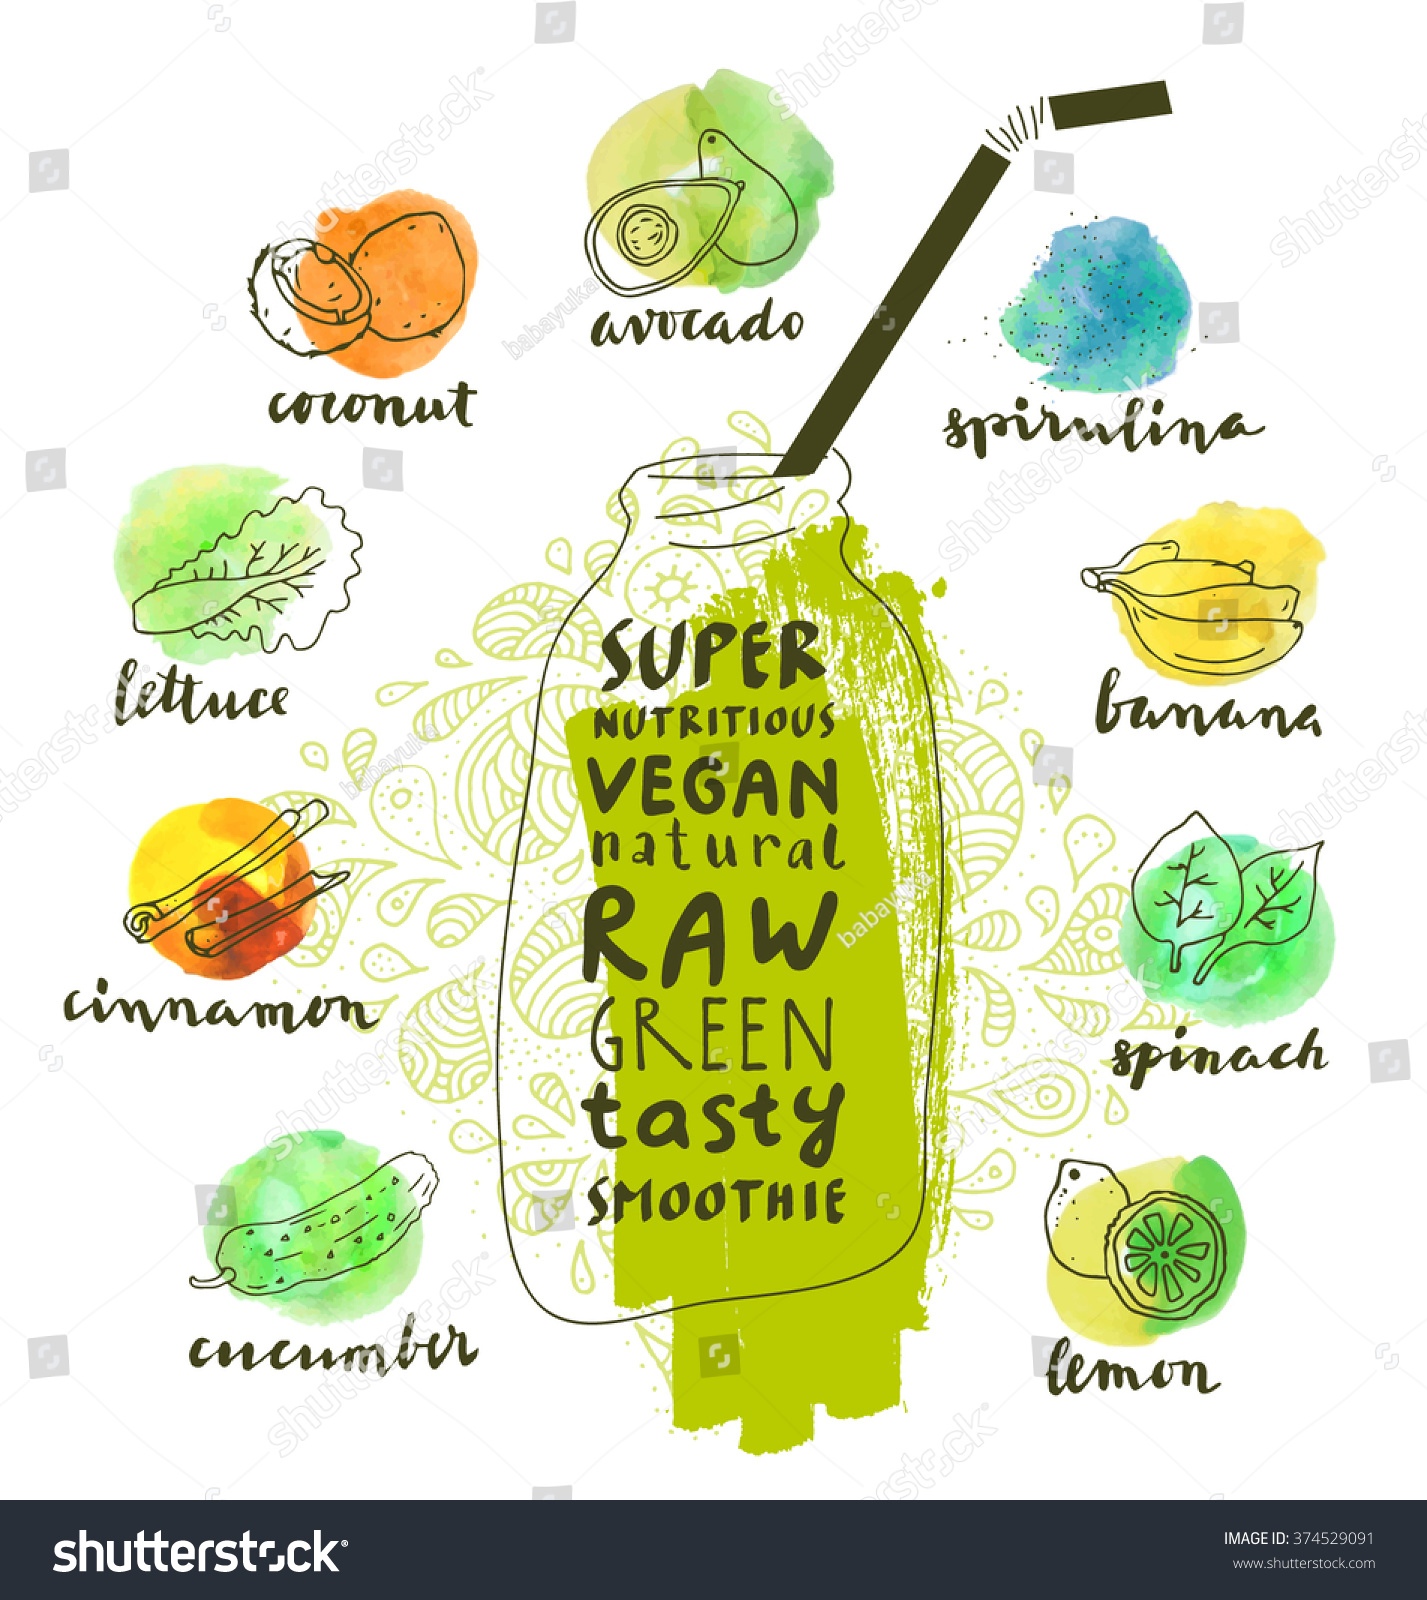 Organic Food Products Healthy: Green Superfoods Smoothie Poster Nutritious Organic Stock